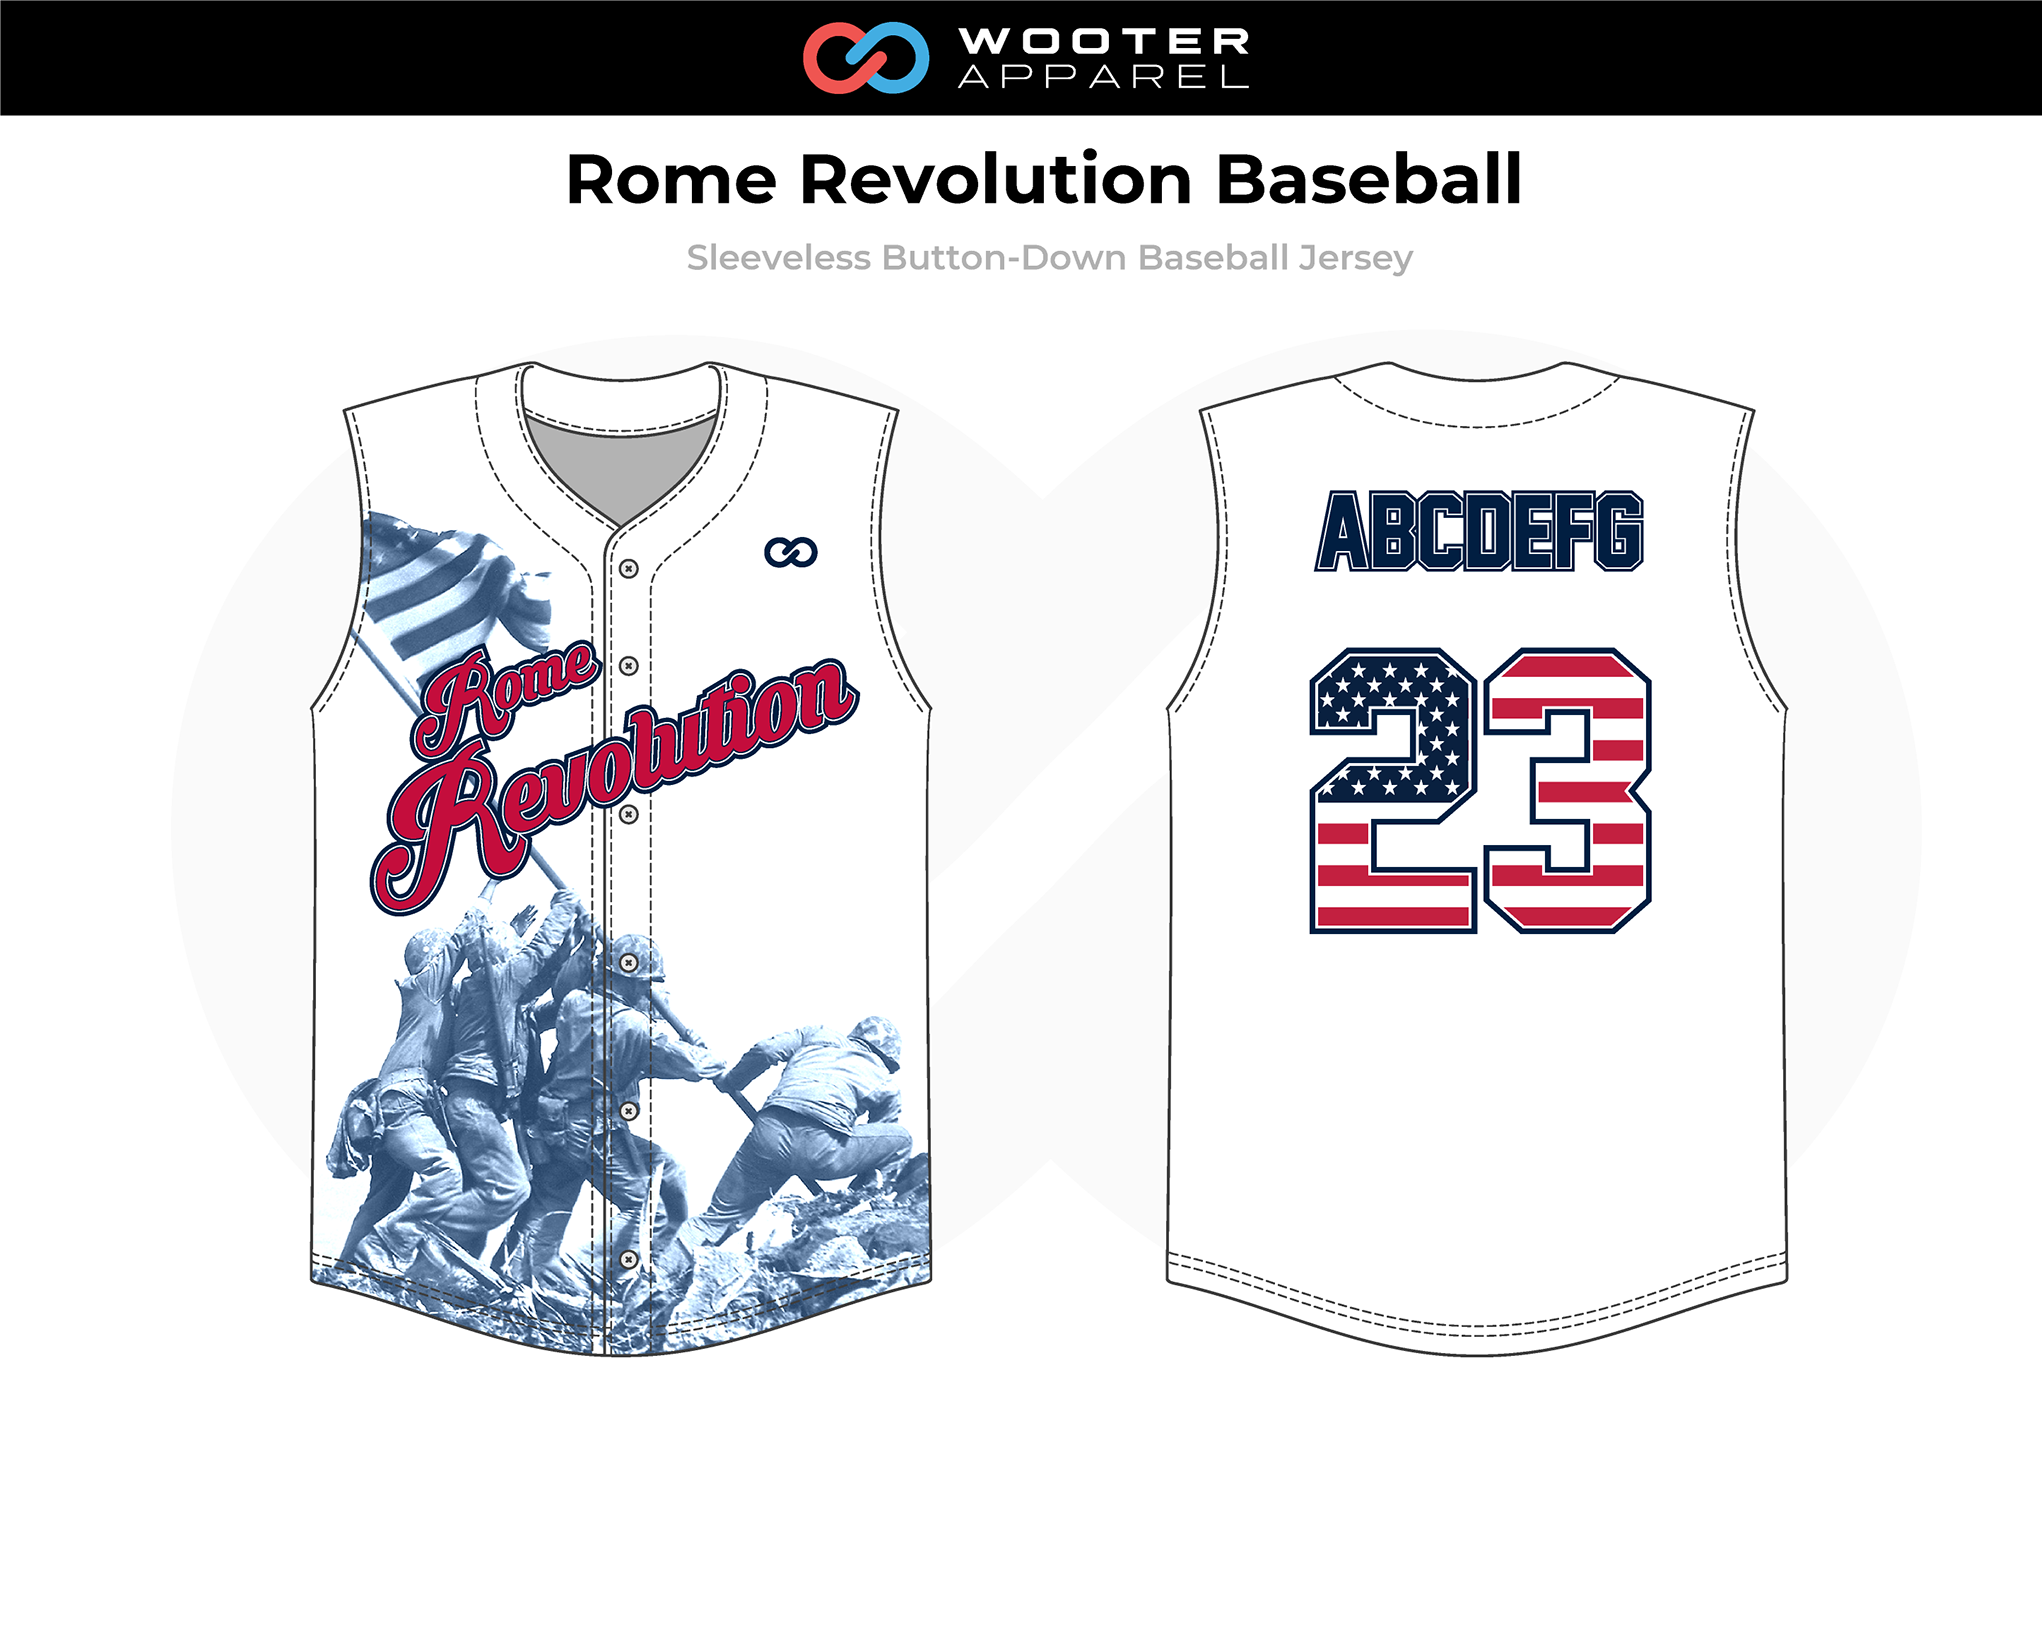 2019-02-18 Rome Revolution Baseball Sleeveless Button-Down Jersey.png